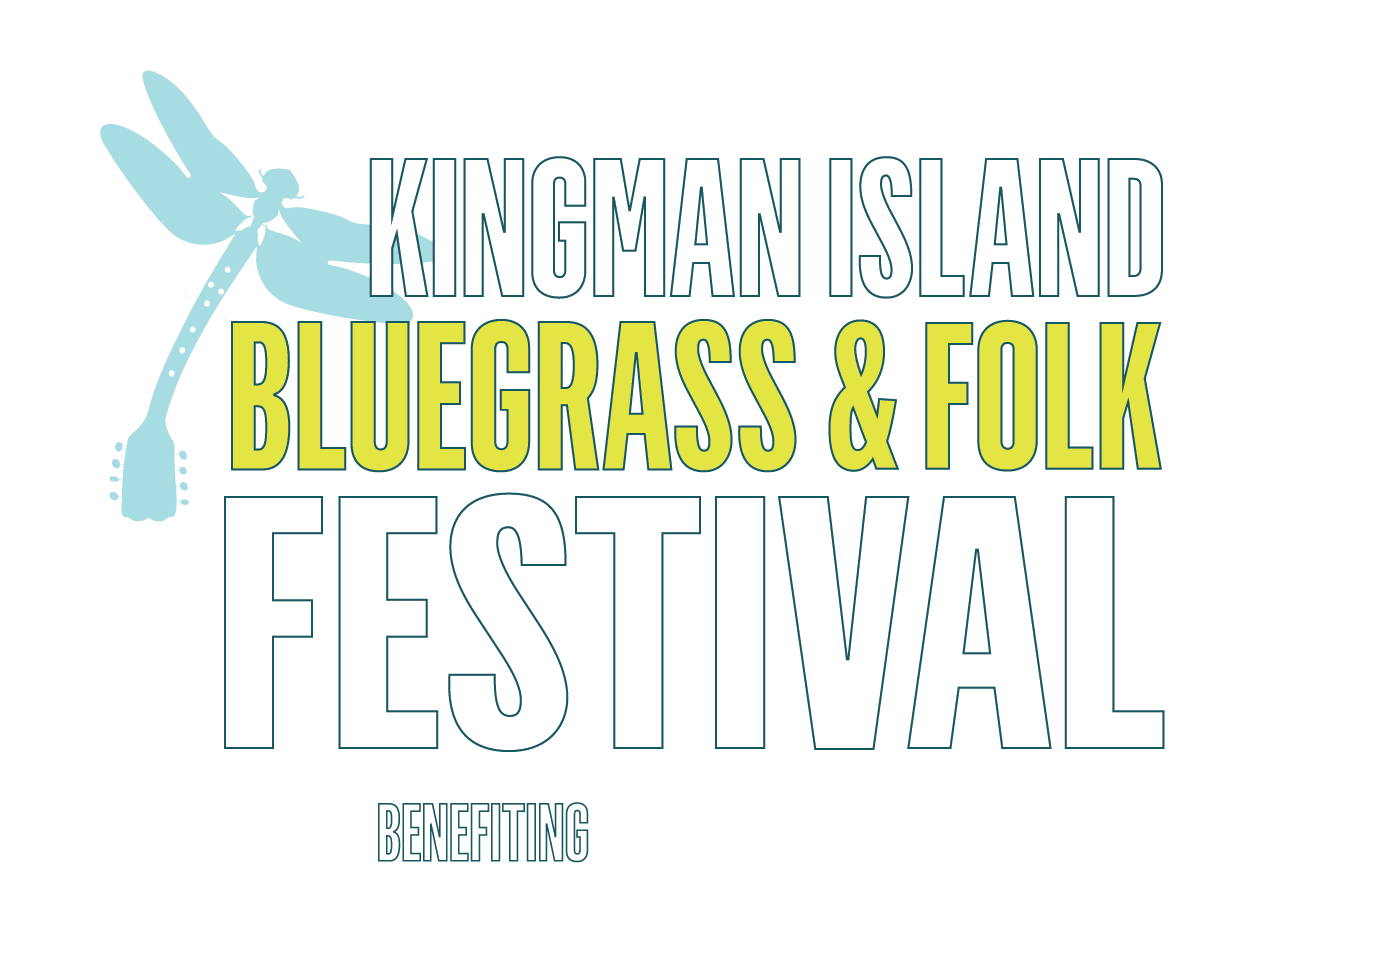 Kingman island Bluegrass & Folk Festival